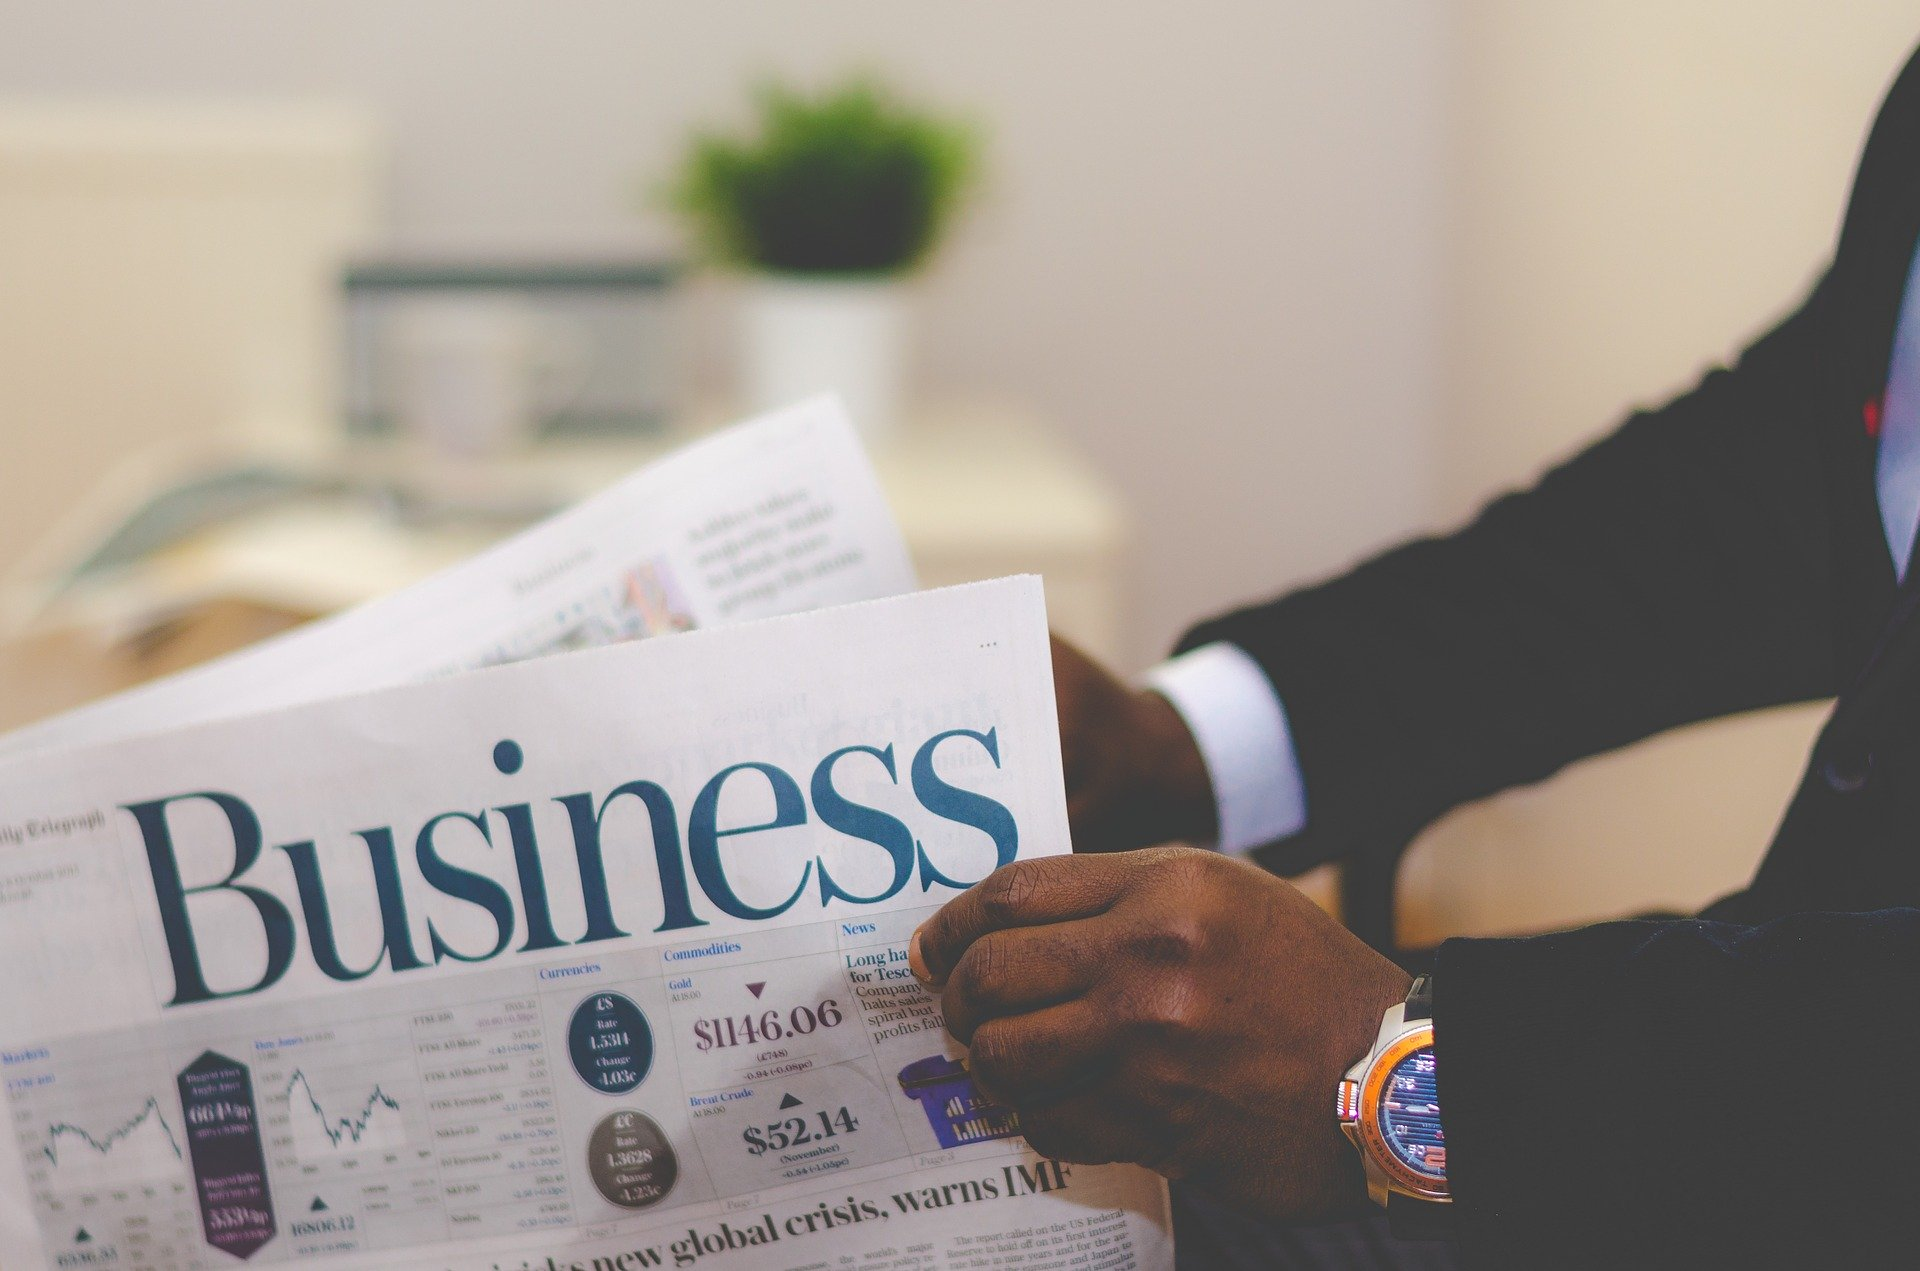 business newspaper image